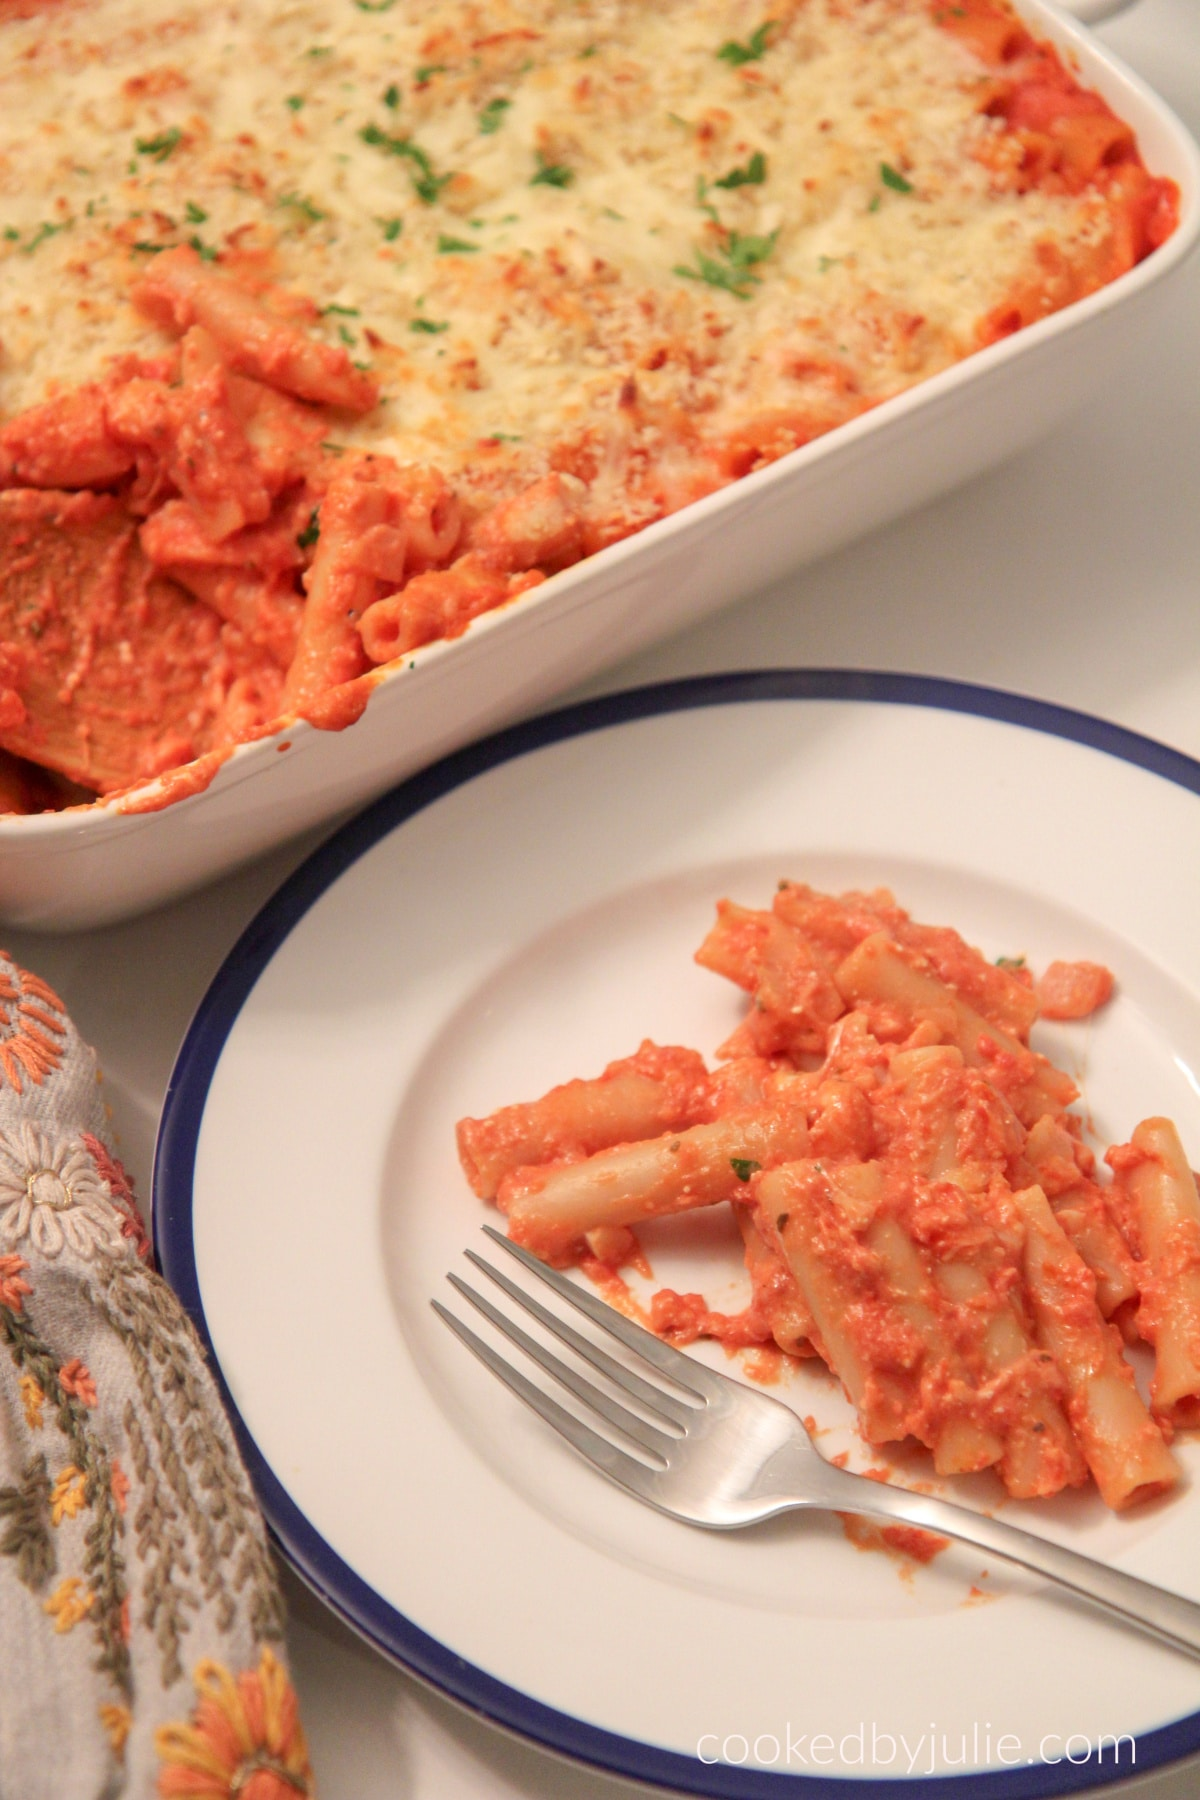 Olive Garden Baked Ziti Recipe Video Cooked By Julie